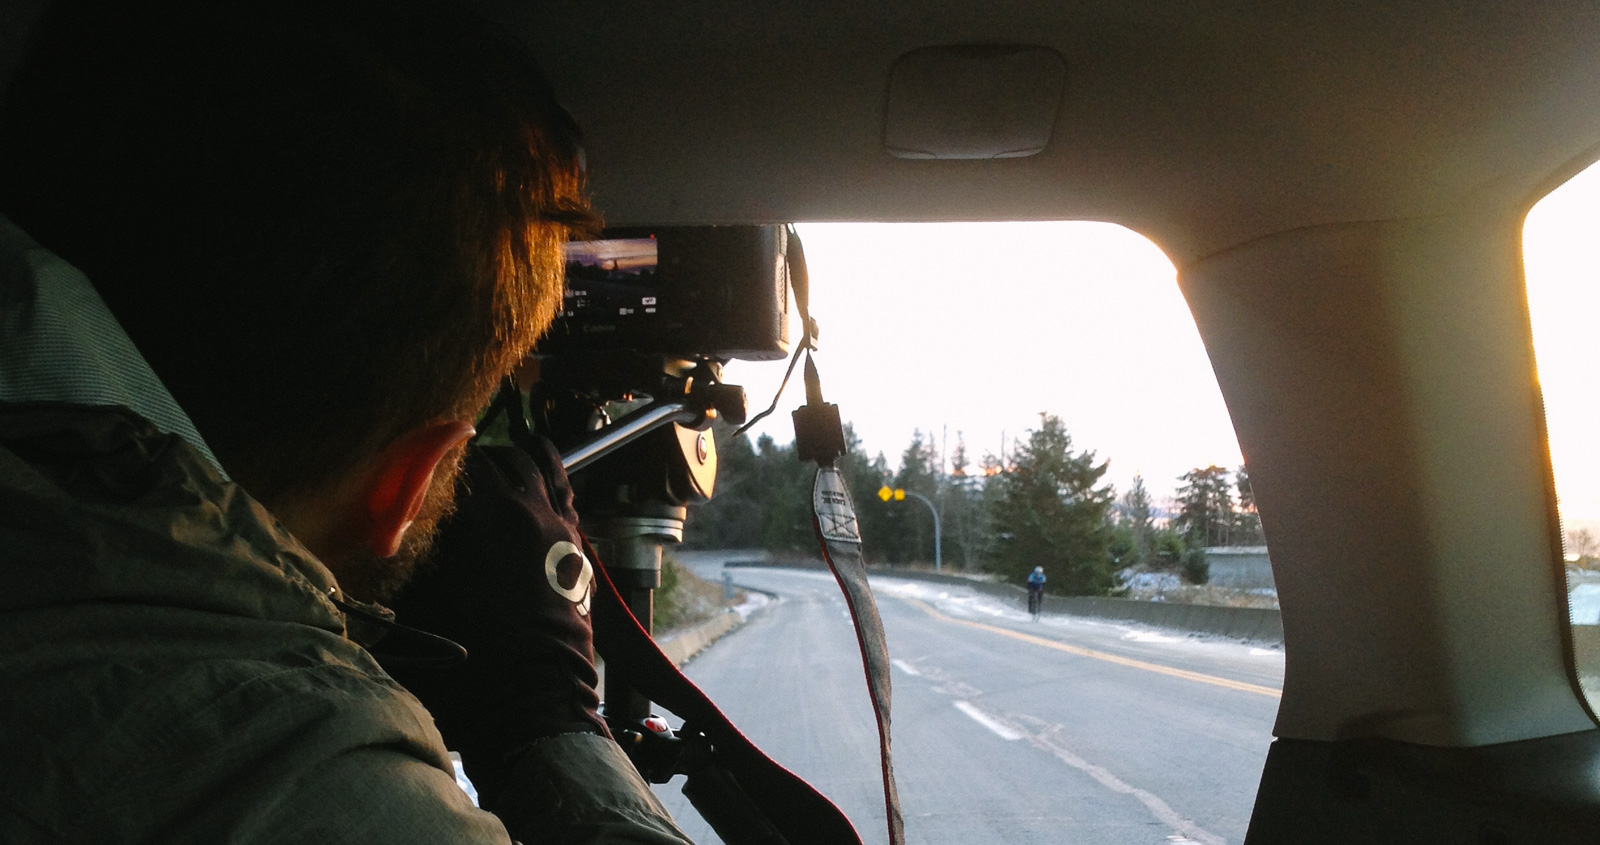 The car was a big asset when shooting moving shots of our rider, Brett.